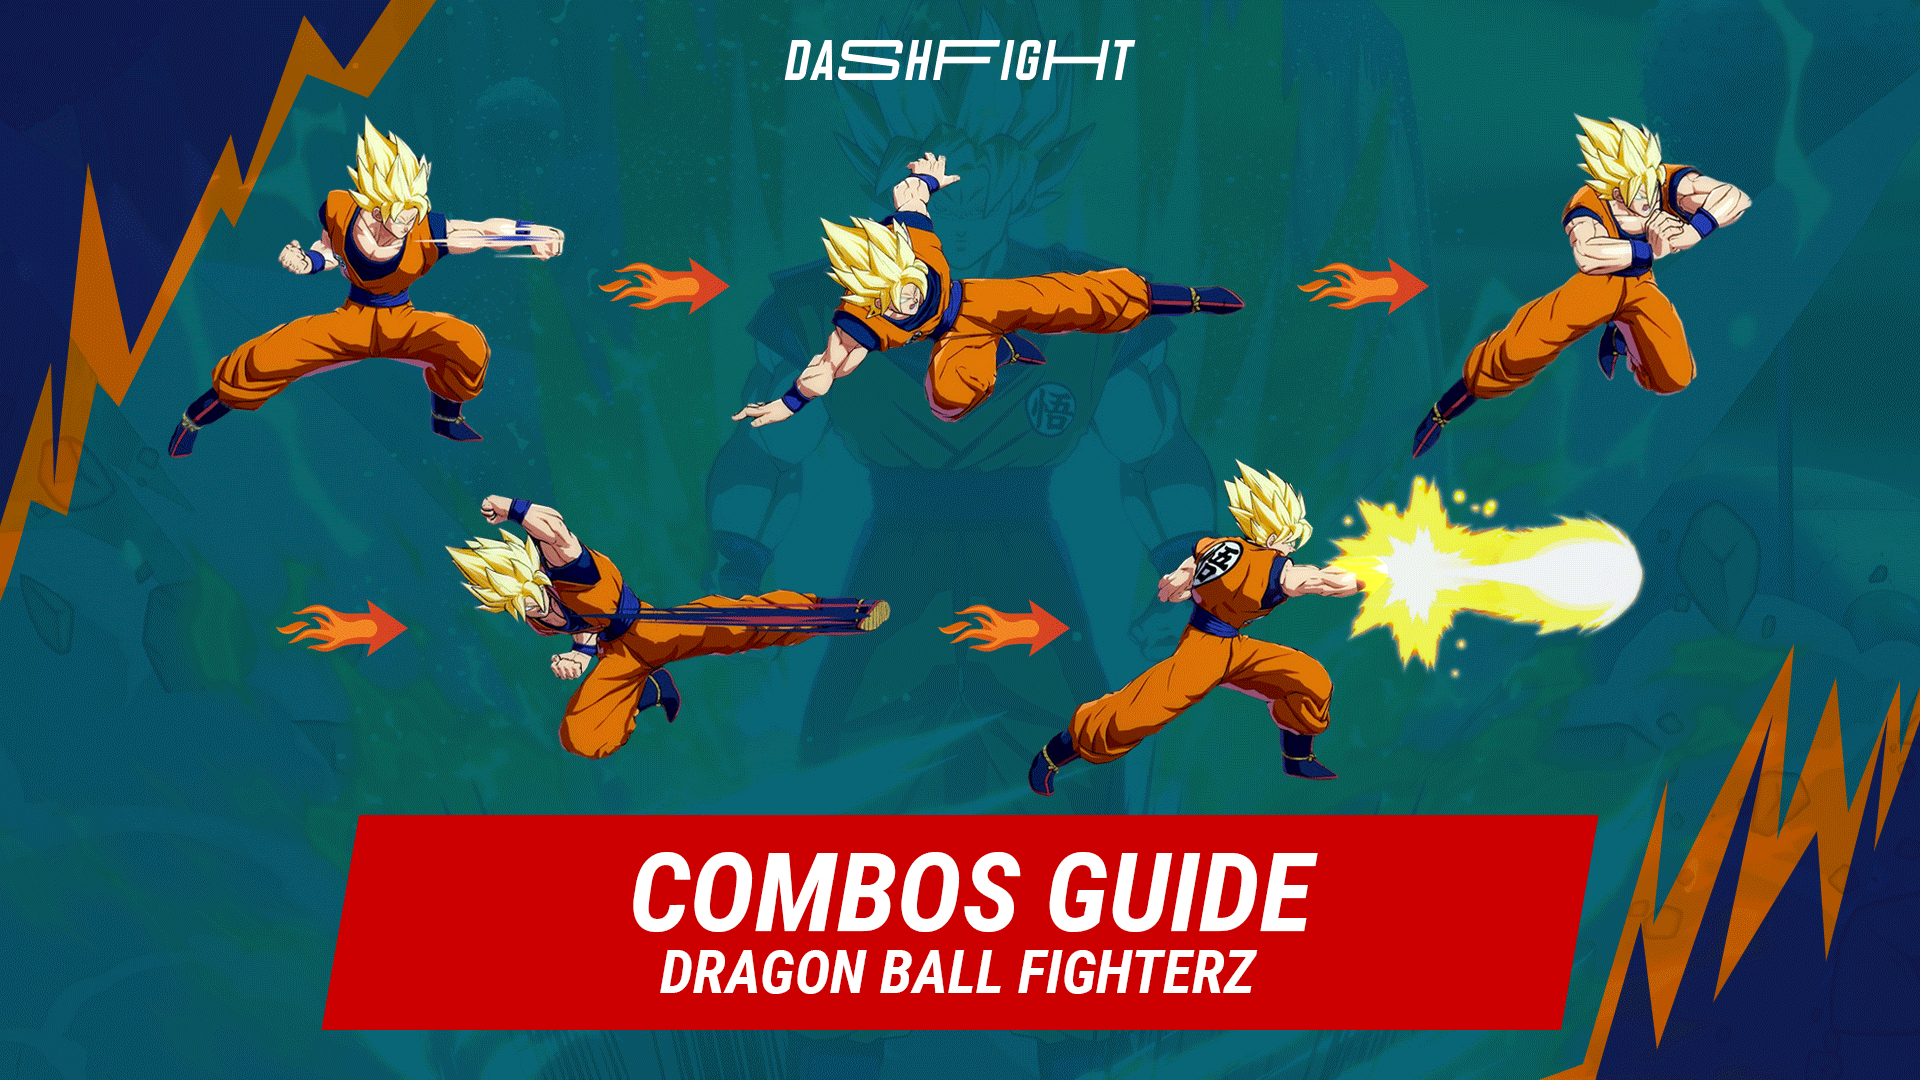 Dragon Ball FighterZ Combos Guide